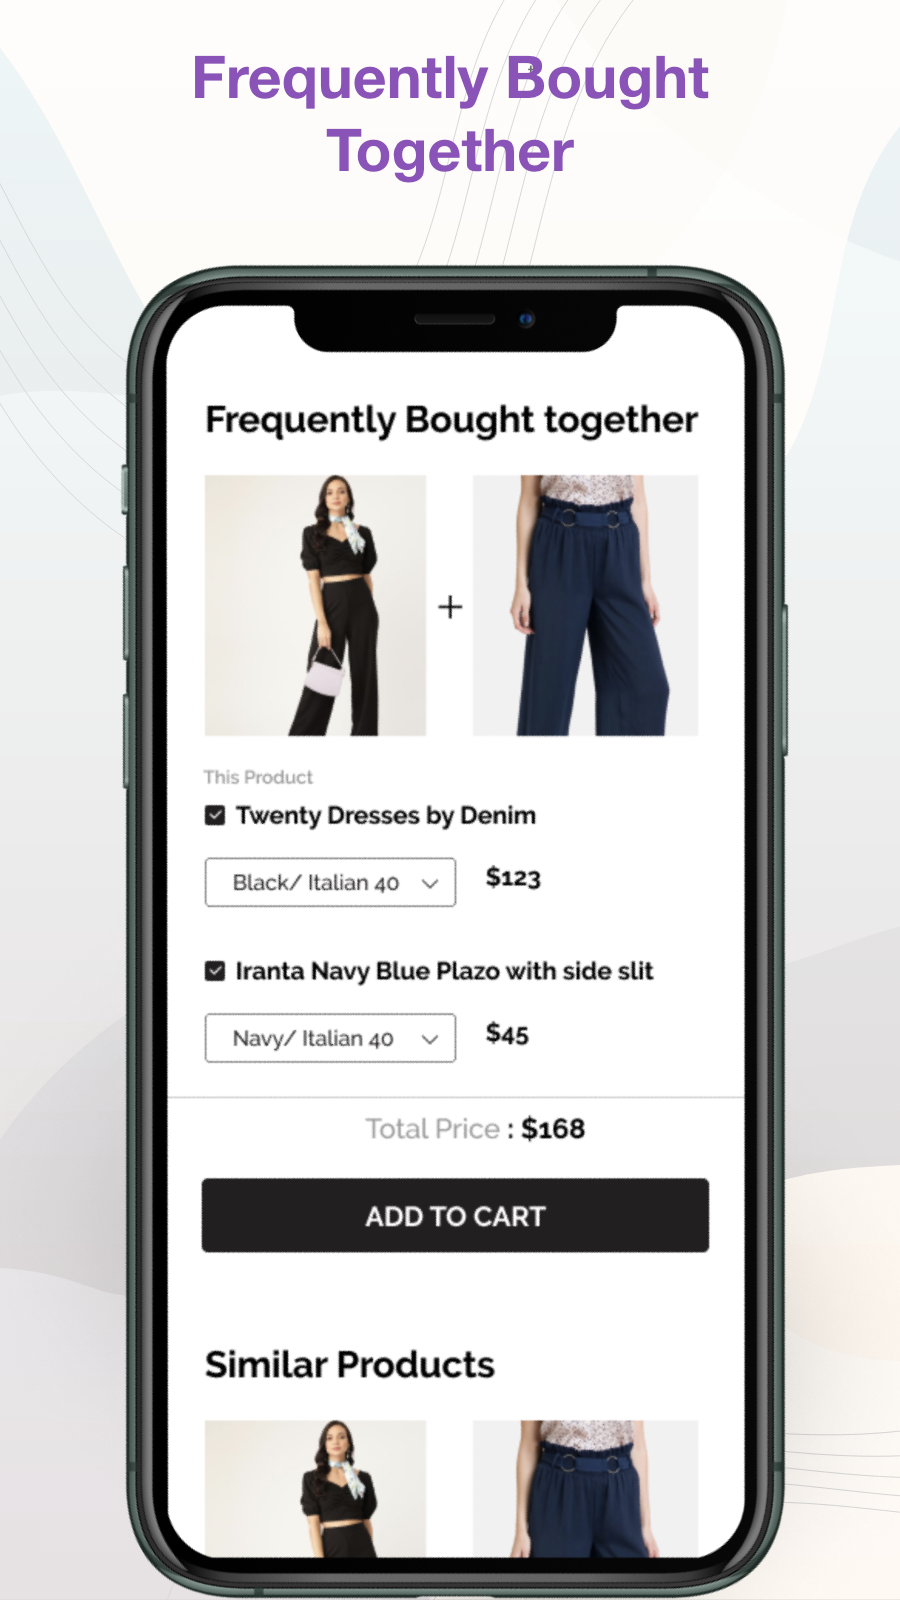 Trending, Personalized Recommendations Similar Products Carousel